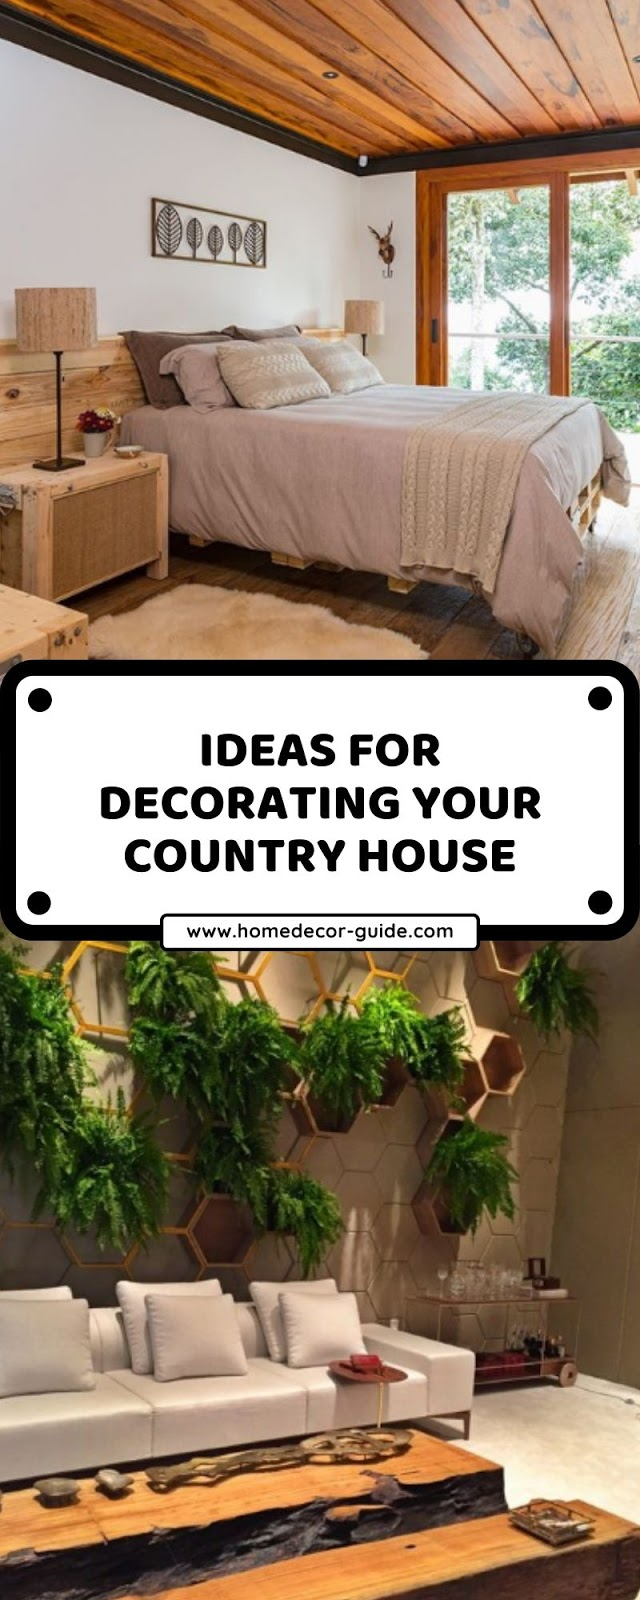 IDEAS FOR DECORATING YOUR COUNTRY HOUSE